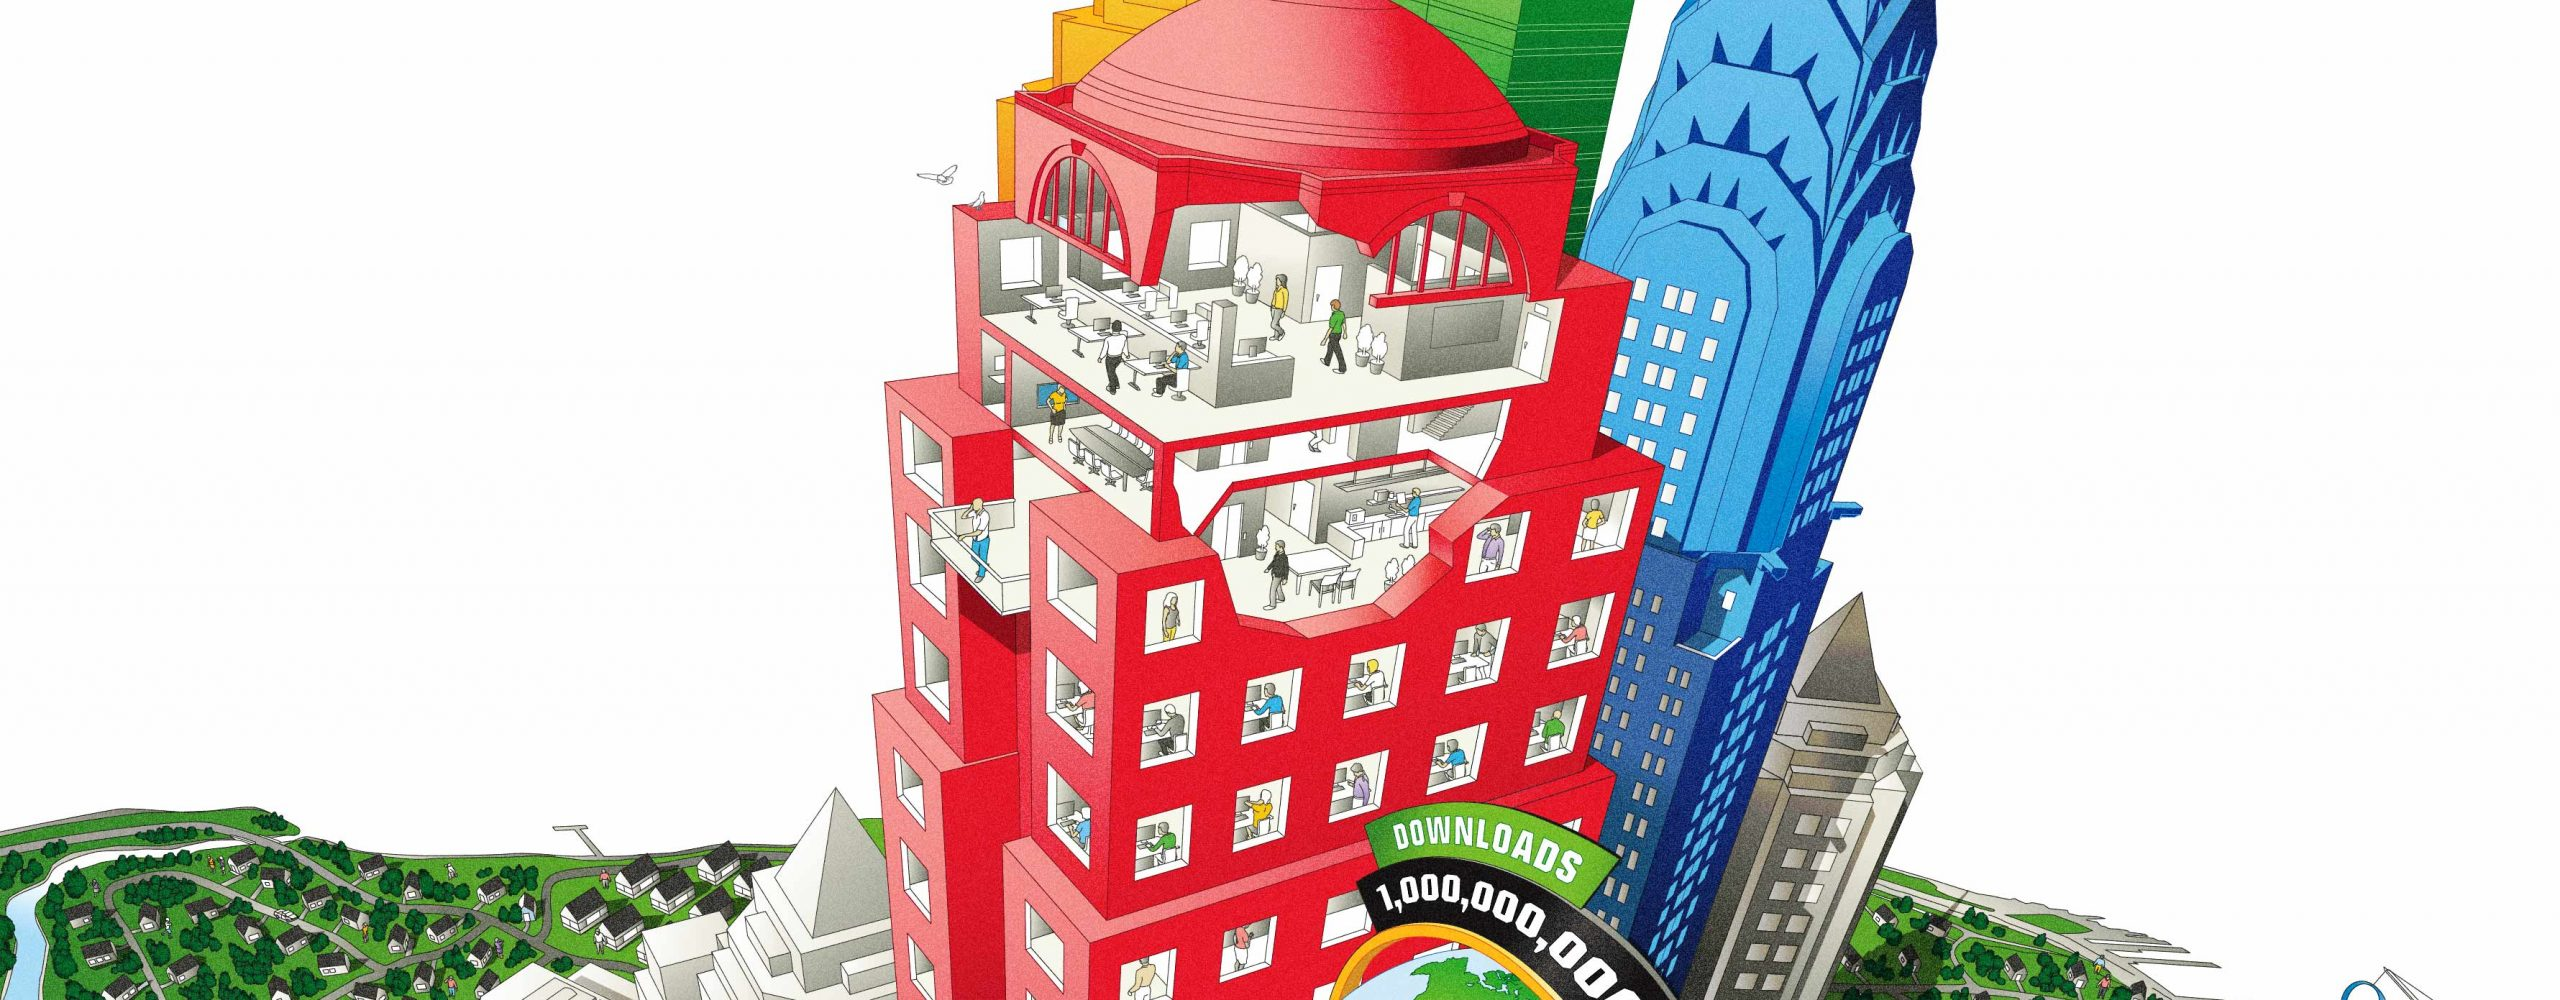 Google Earth infographic cover, buildings, cutaway